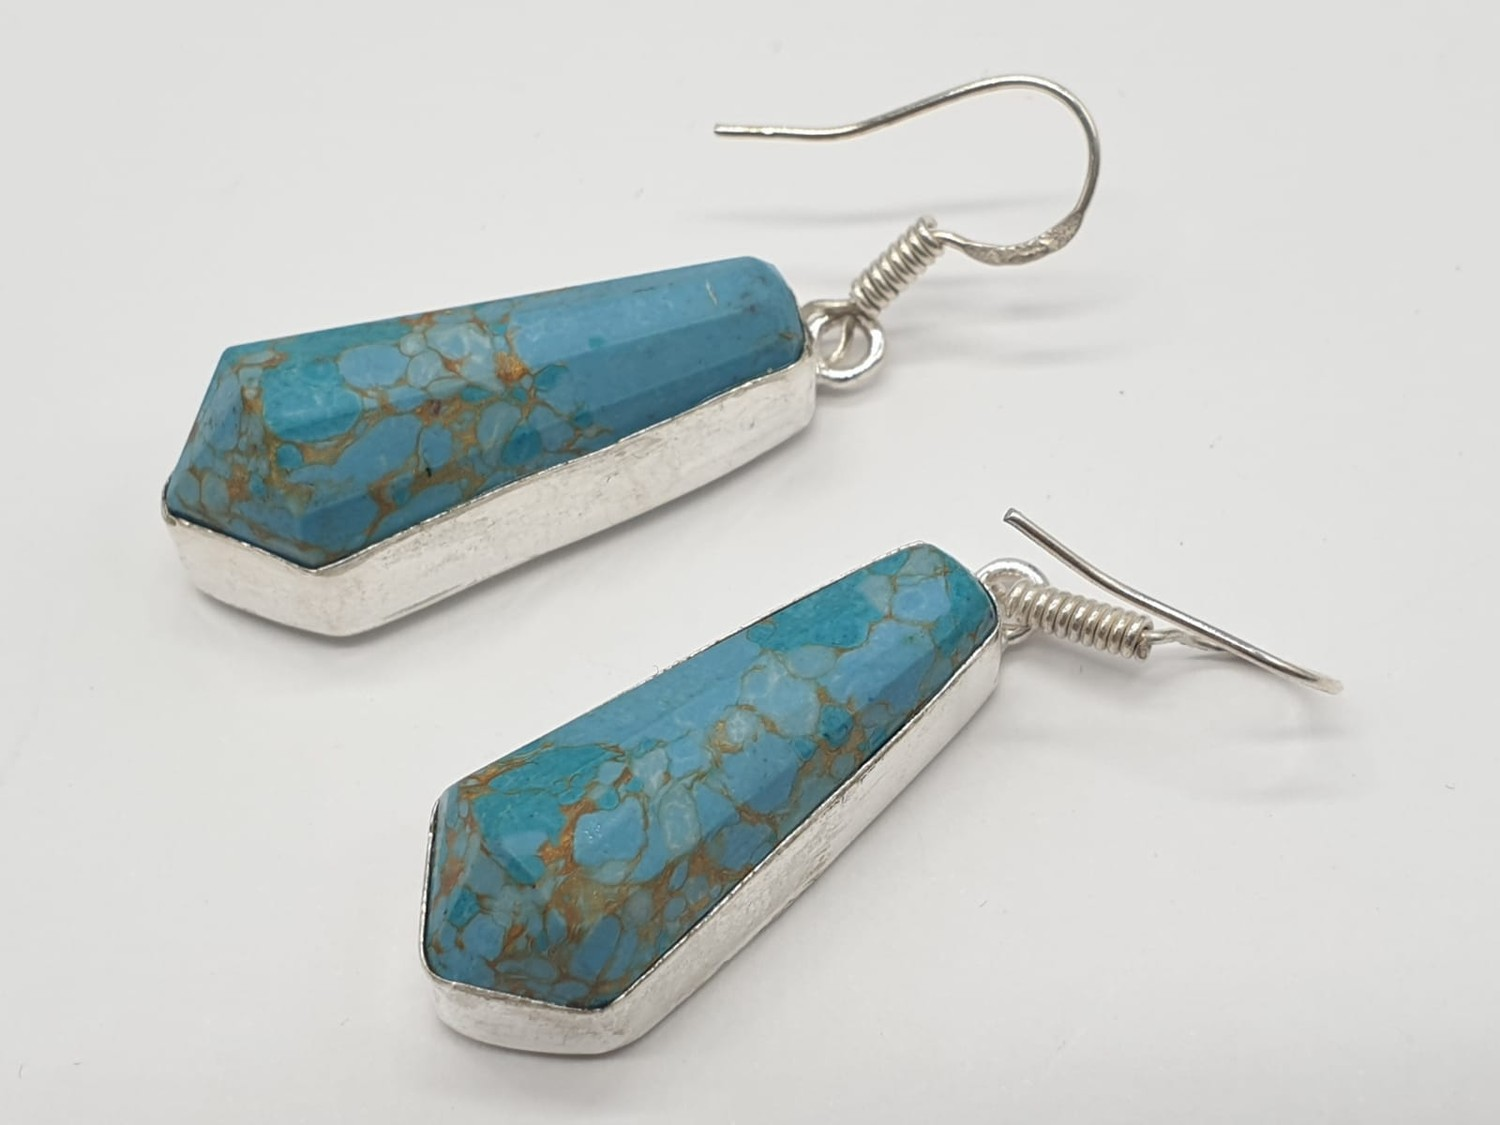 A Pharaonic style necklace and earrings set with light brown-gold veined turquoise obelisks and - Image 15 of 24